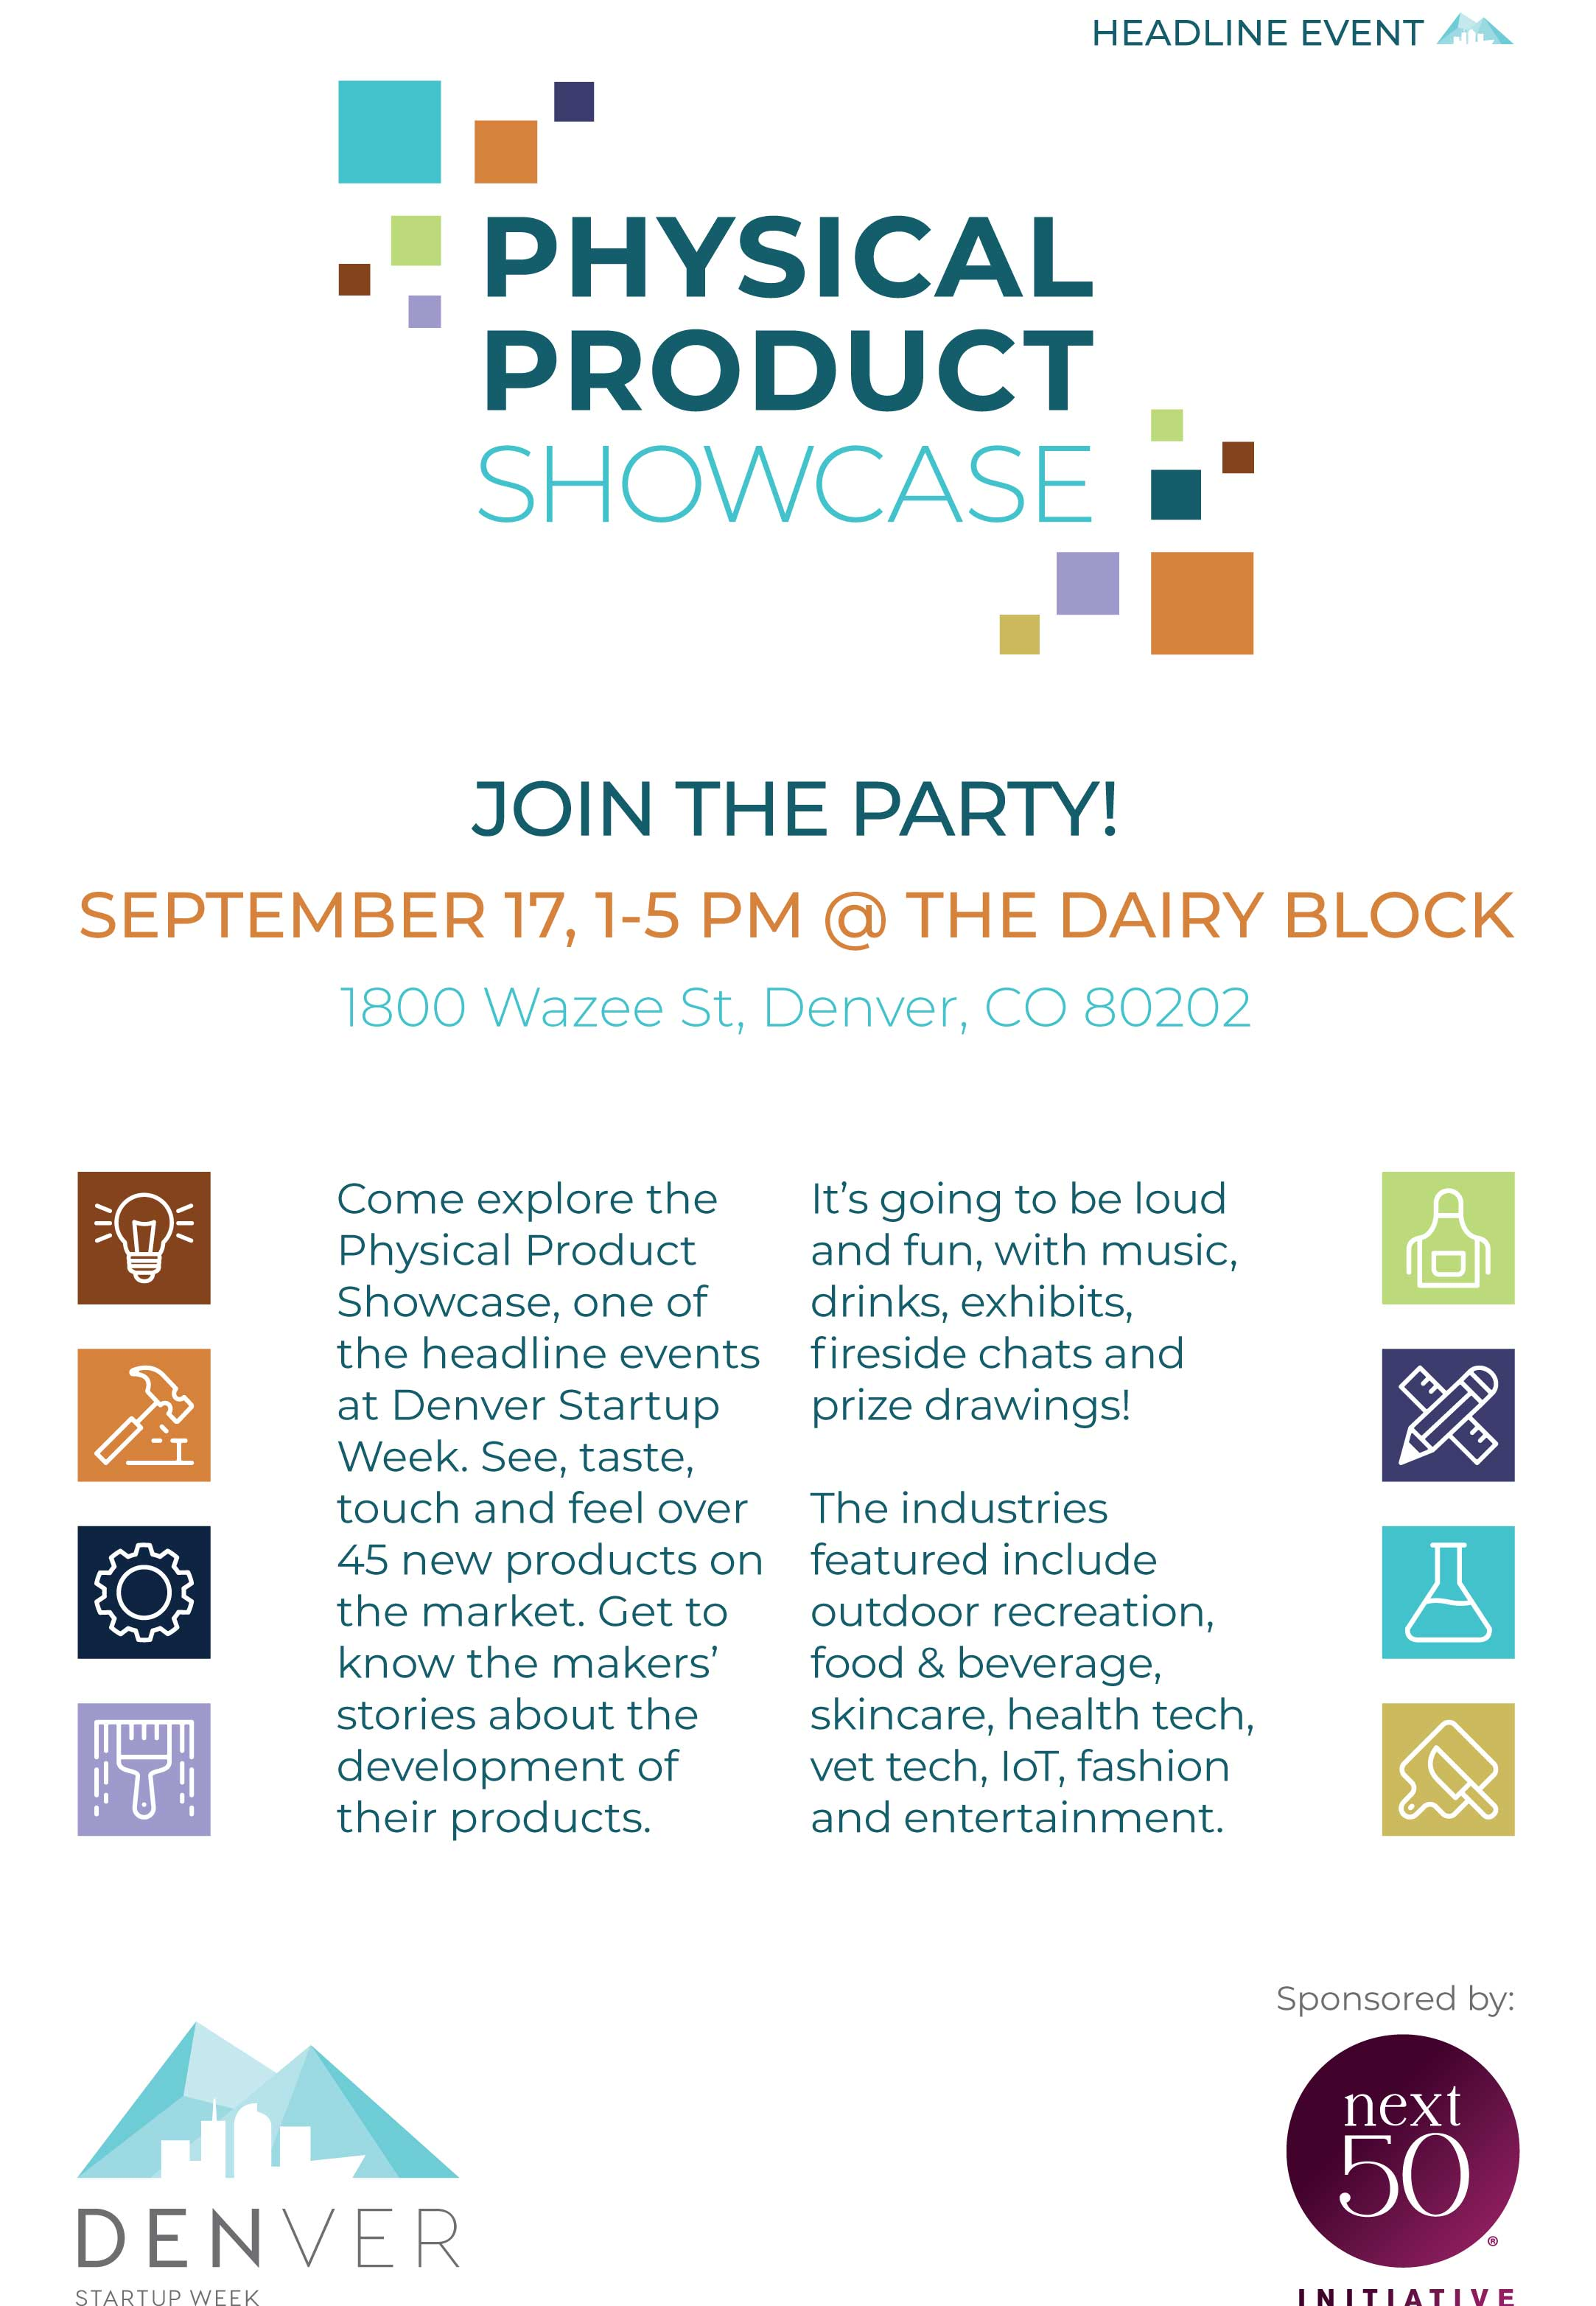 Flyer for the Physical Product Showcase during Denver Startup Week.